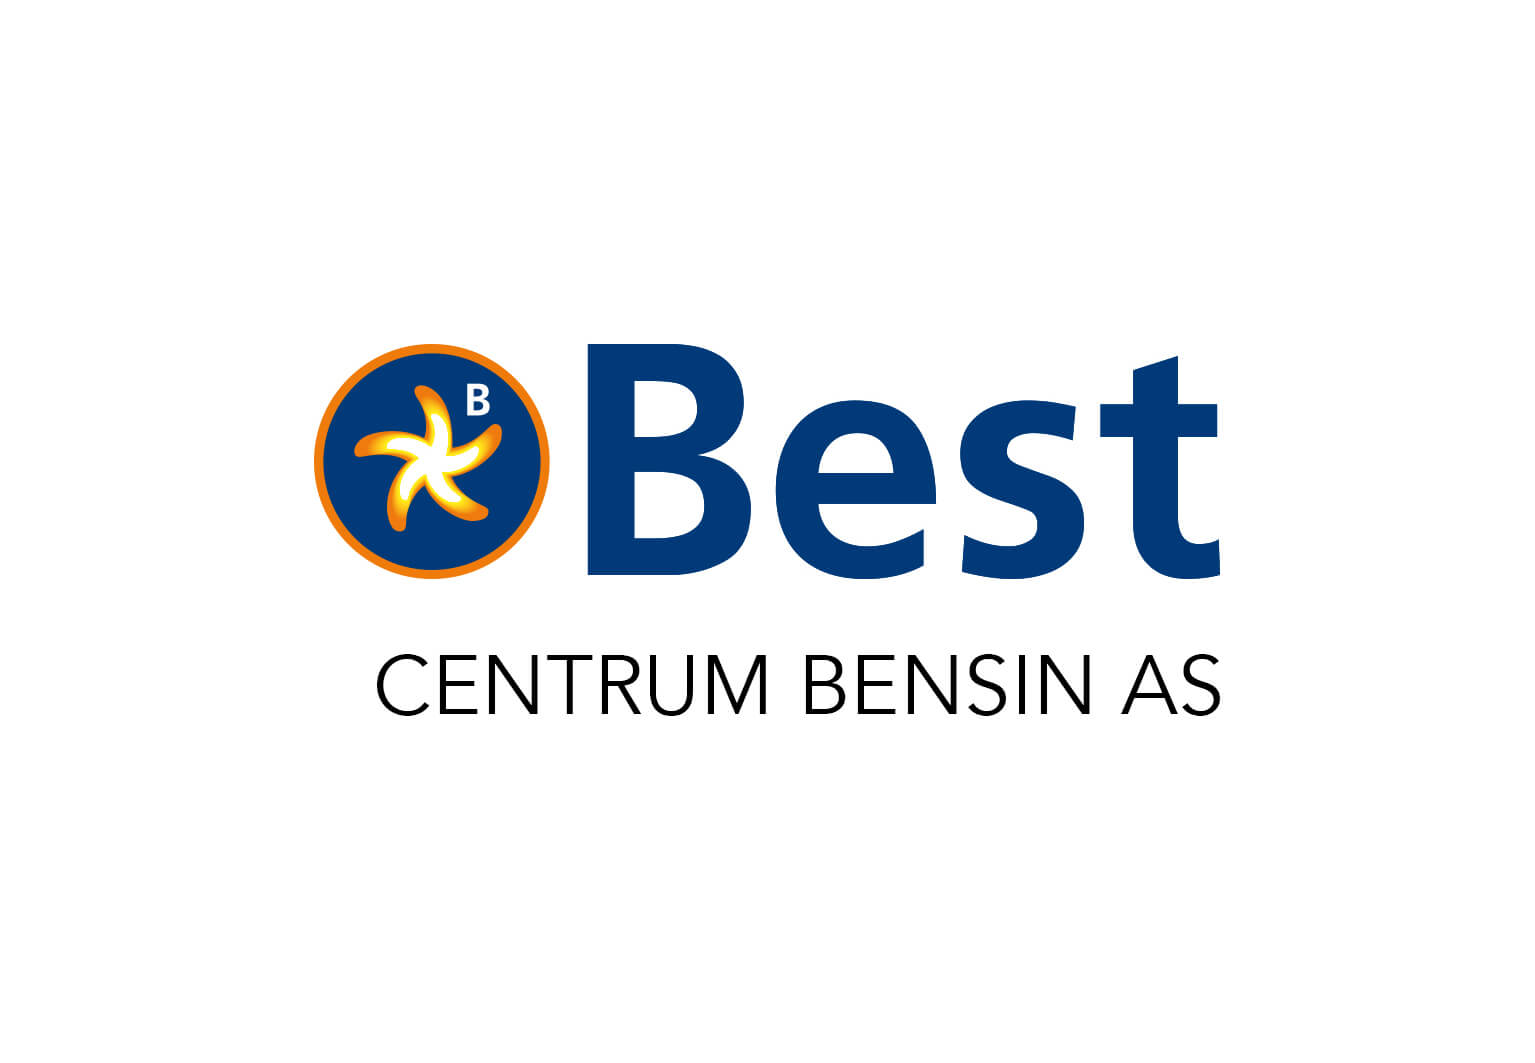 Best Centrum Bensin logo